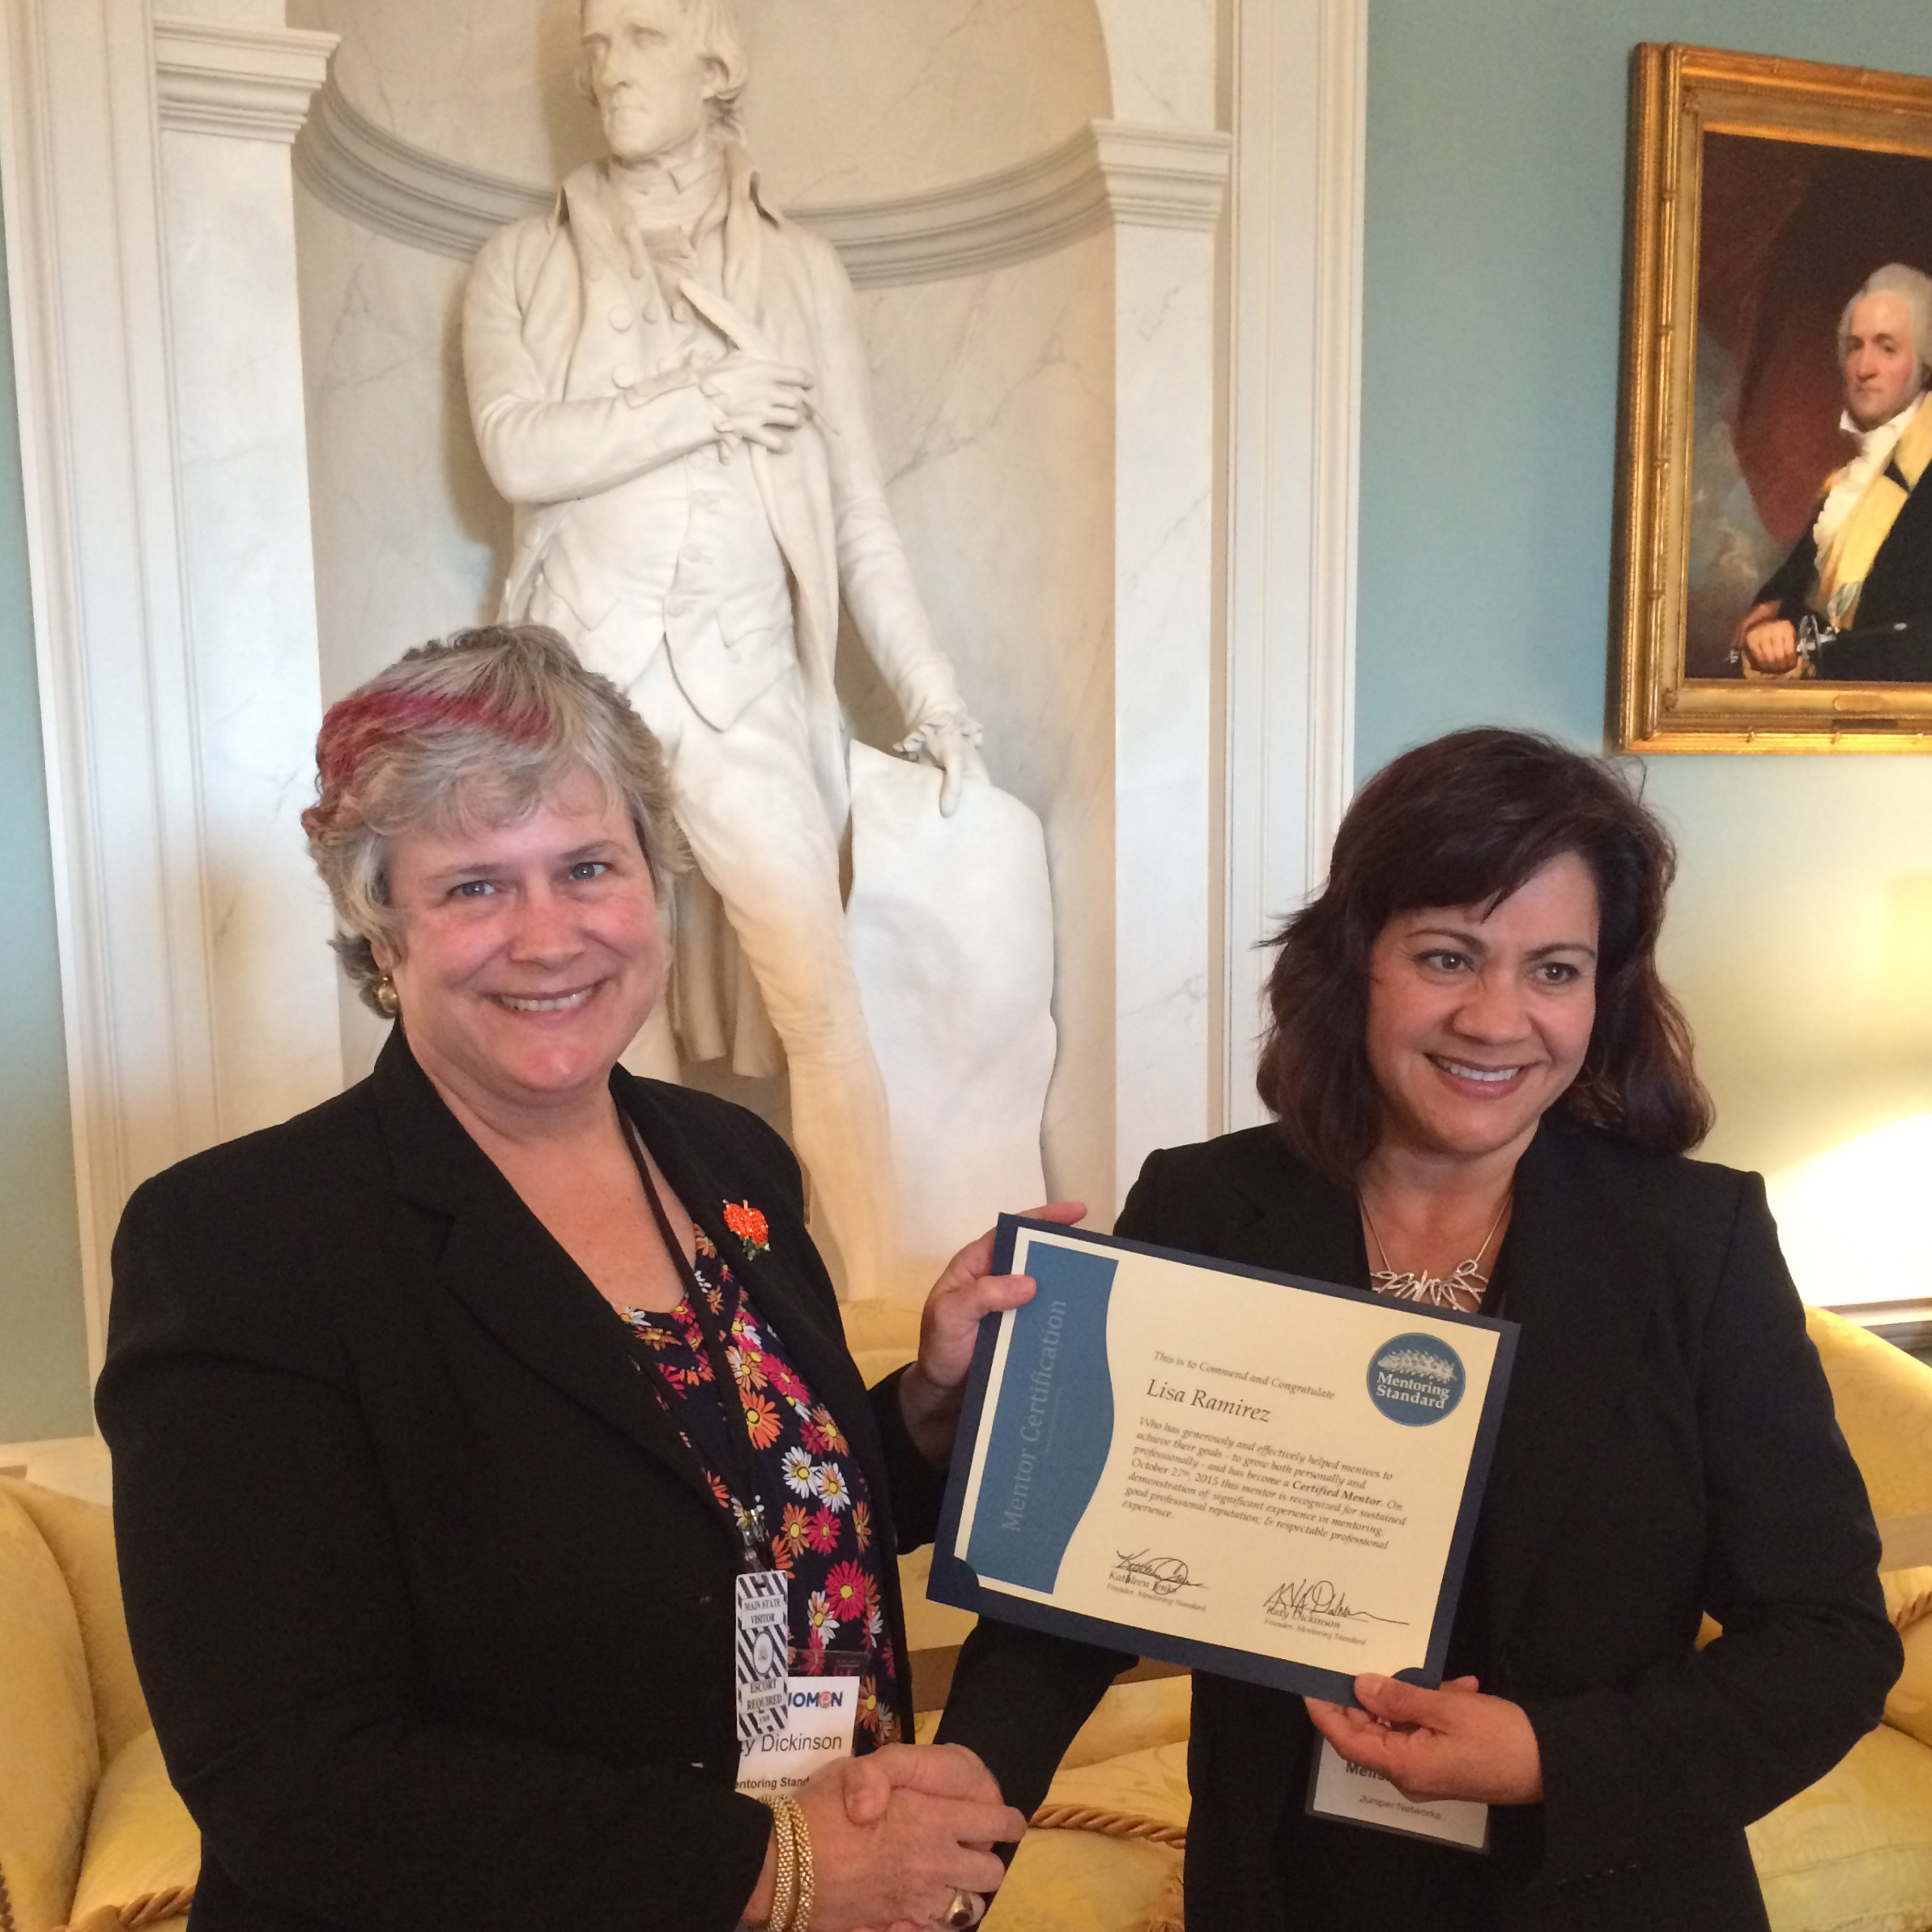 Lisa Ramirez received her Mentor Certificate from Katy Dickinson, October 2015